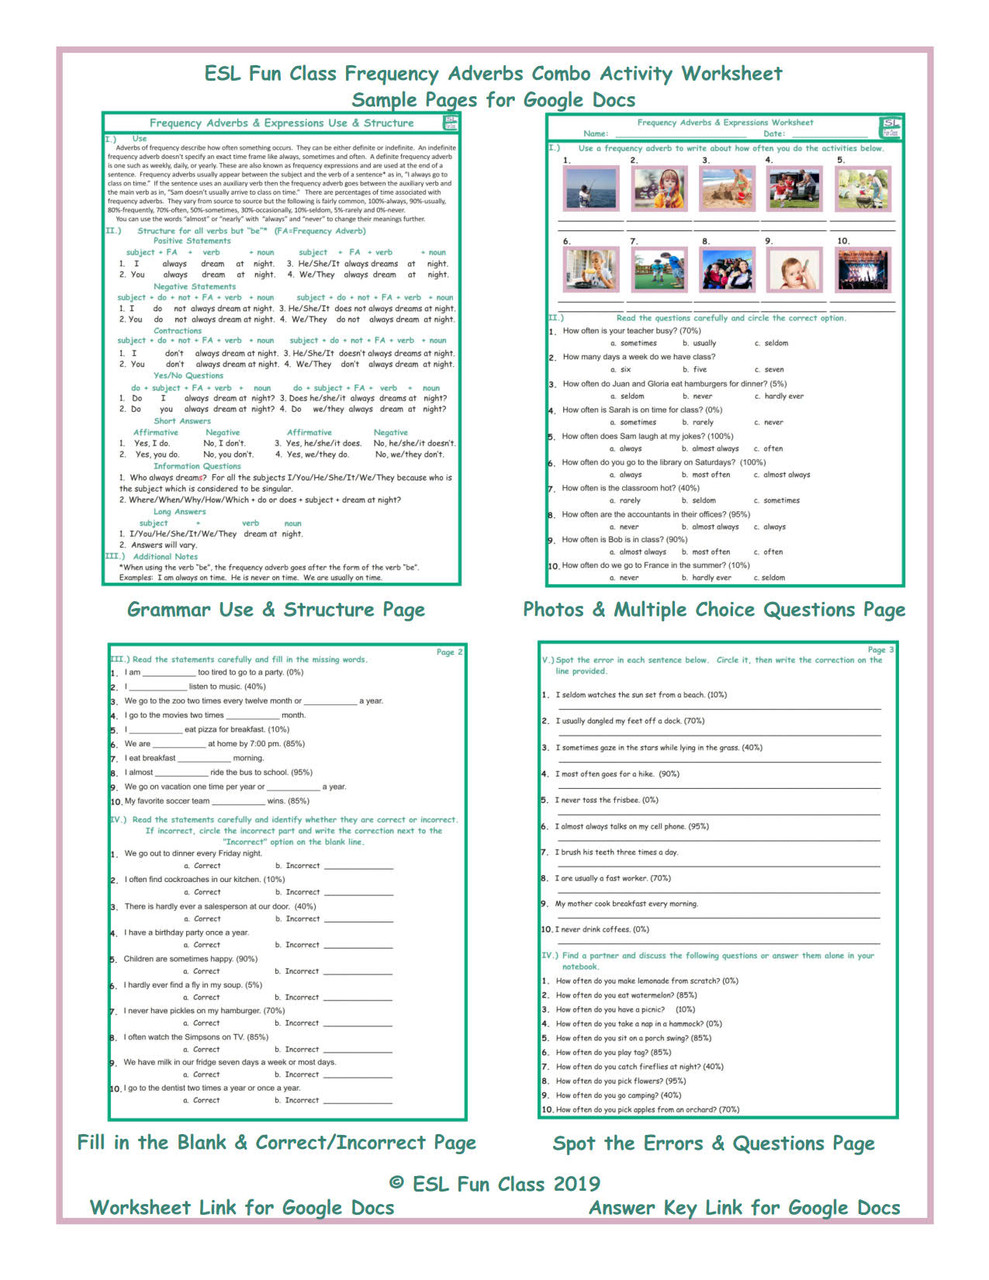 Frequency Adverbs Combo Interactive Worksheets for Google Docs LINKS -  Amped Up Learning [ 1280 x 989 Pixel ]